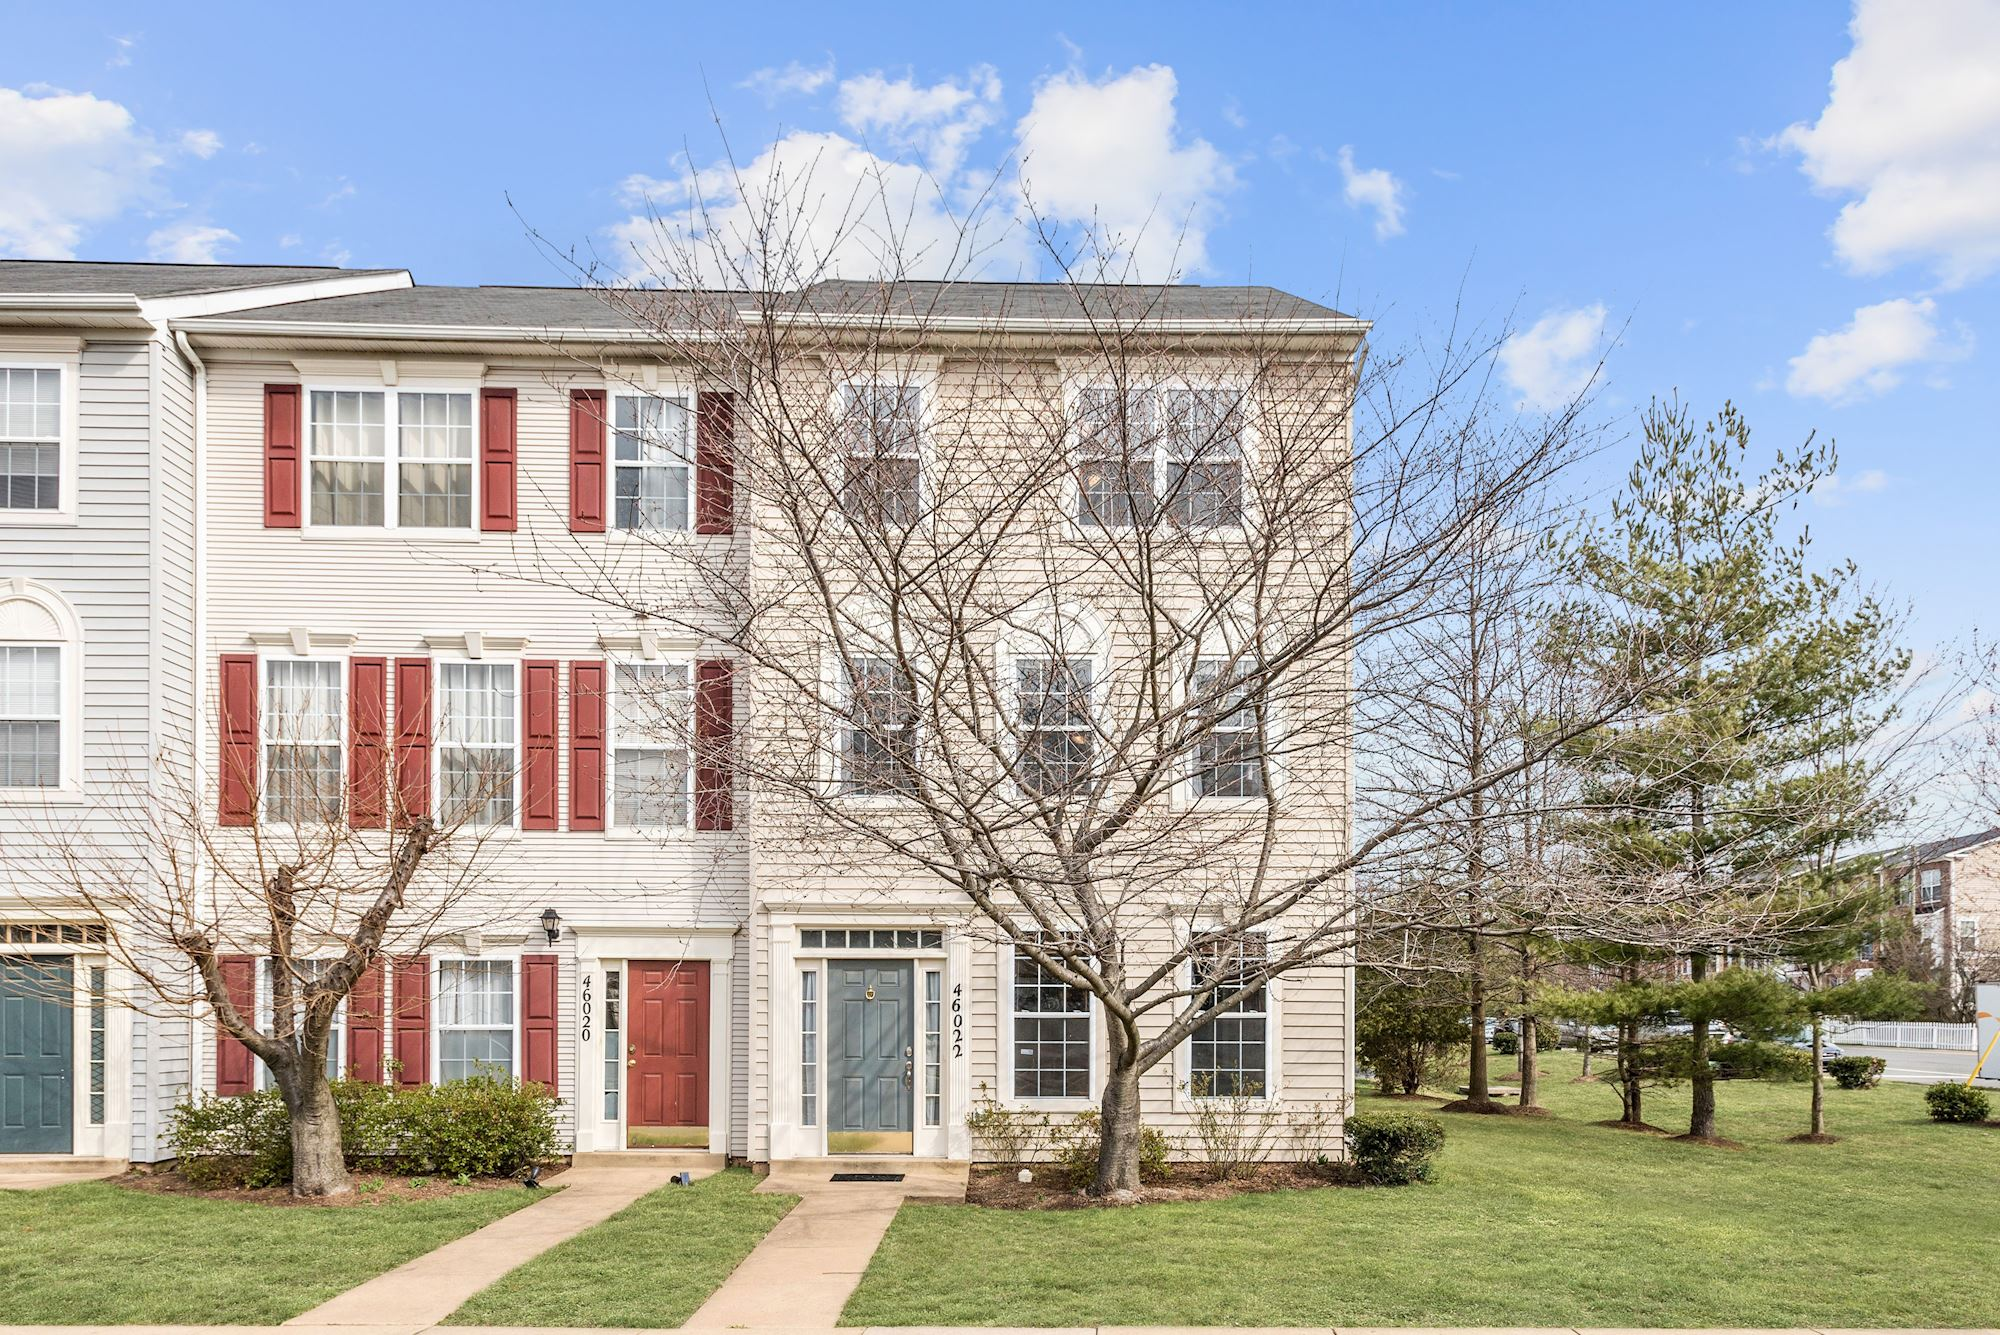 NEW LISTING: 4BR/2.5BA End Unit TH in a Fantastic Sterling, VA Location